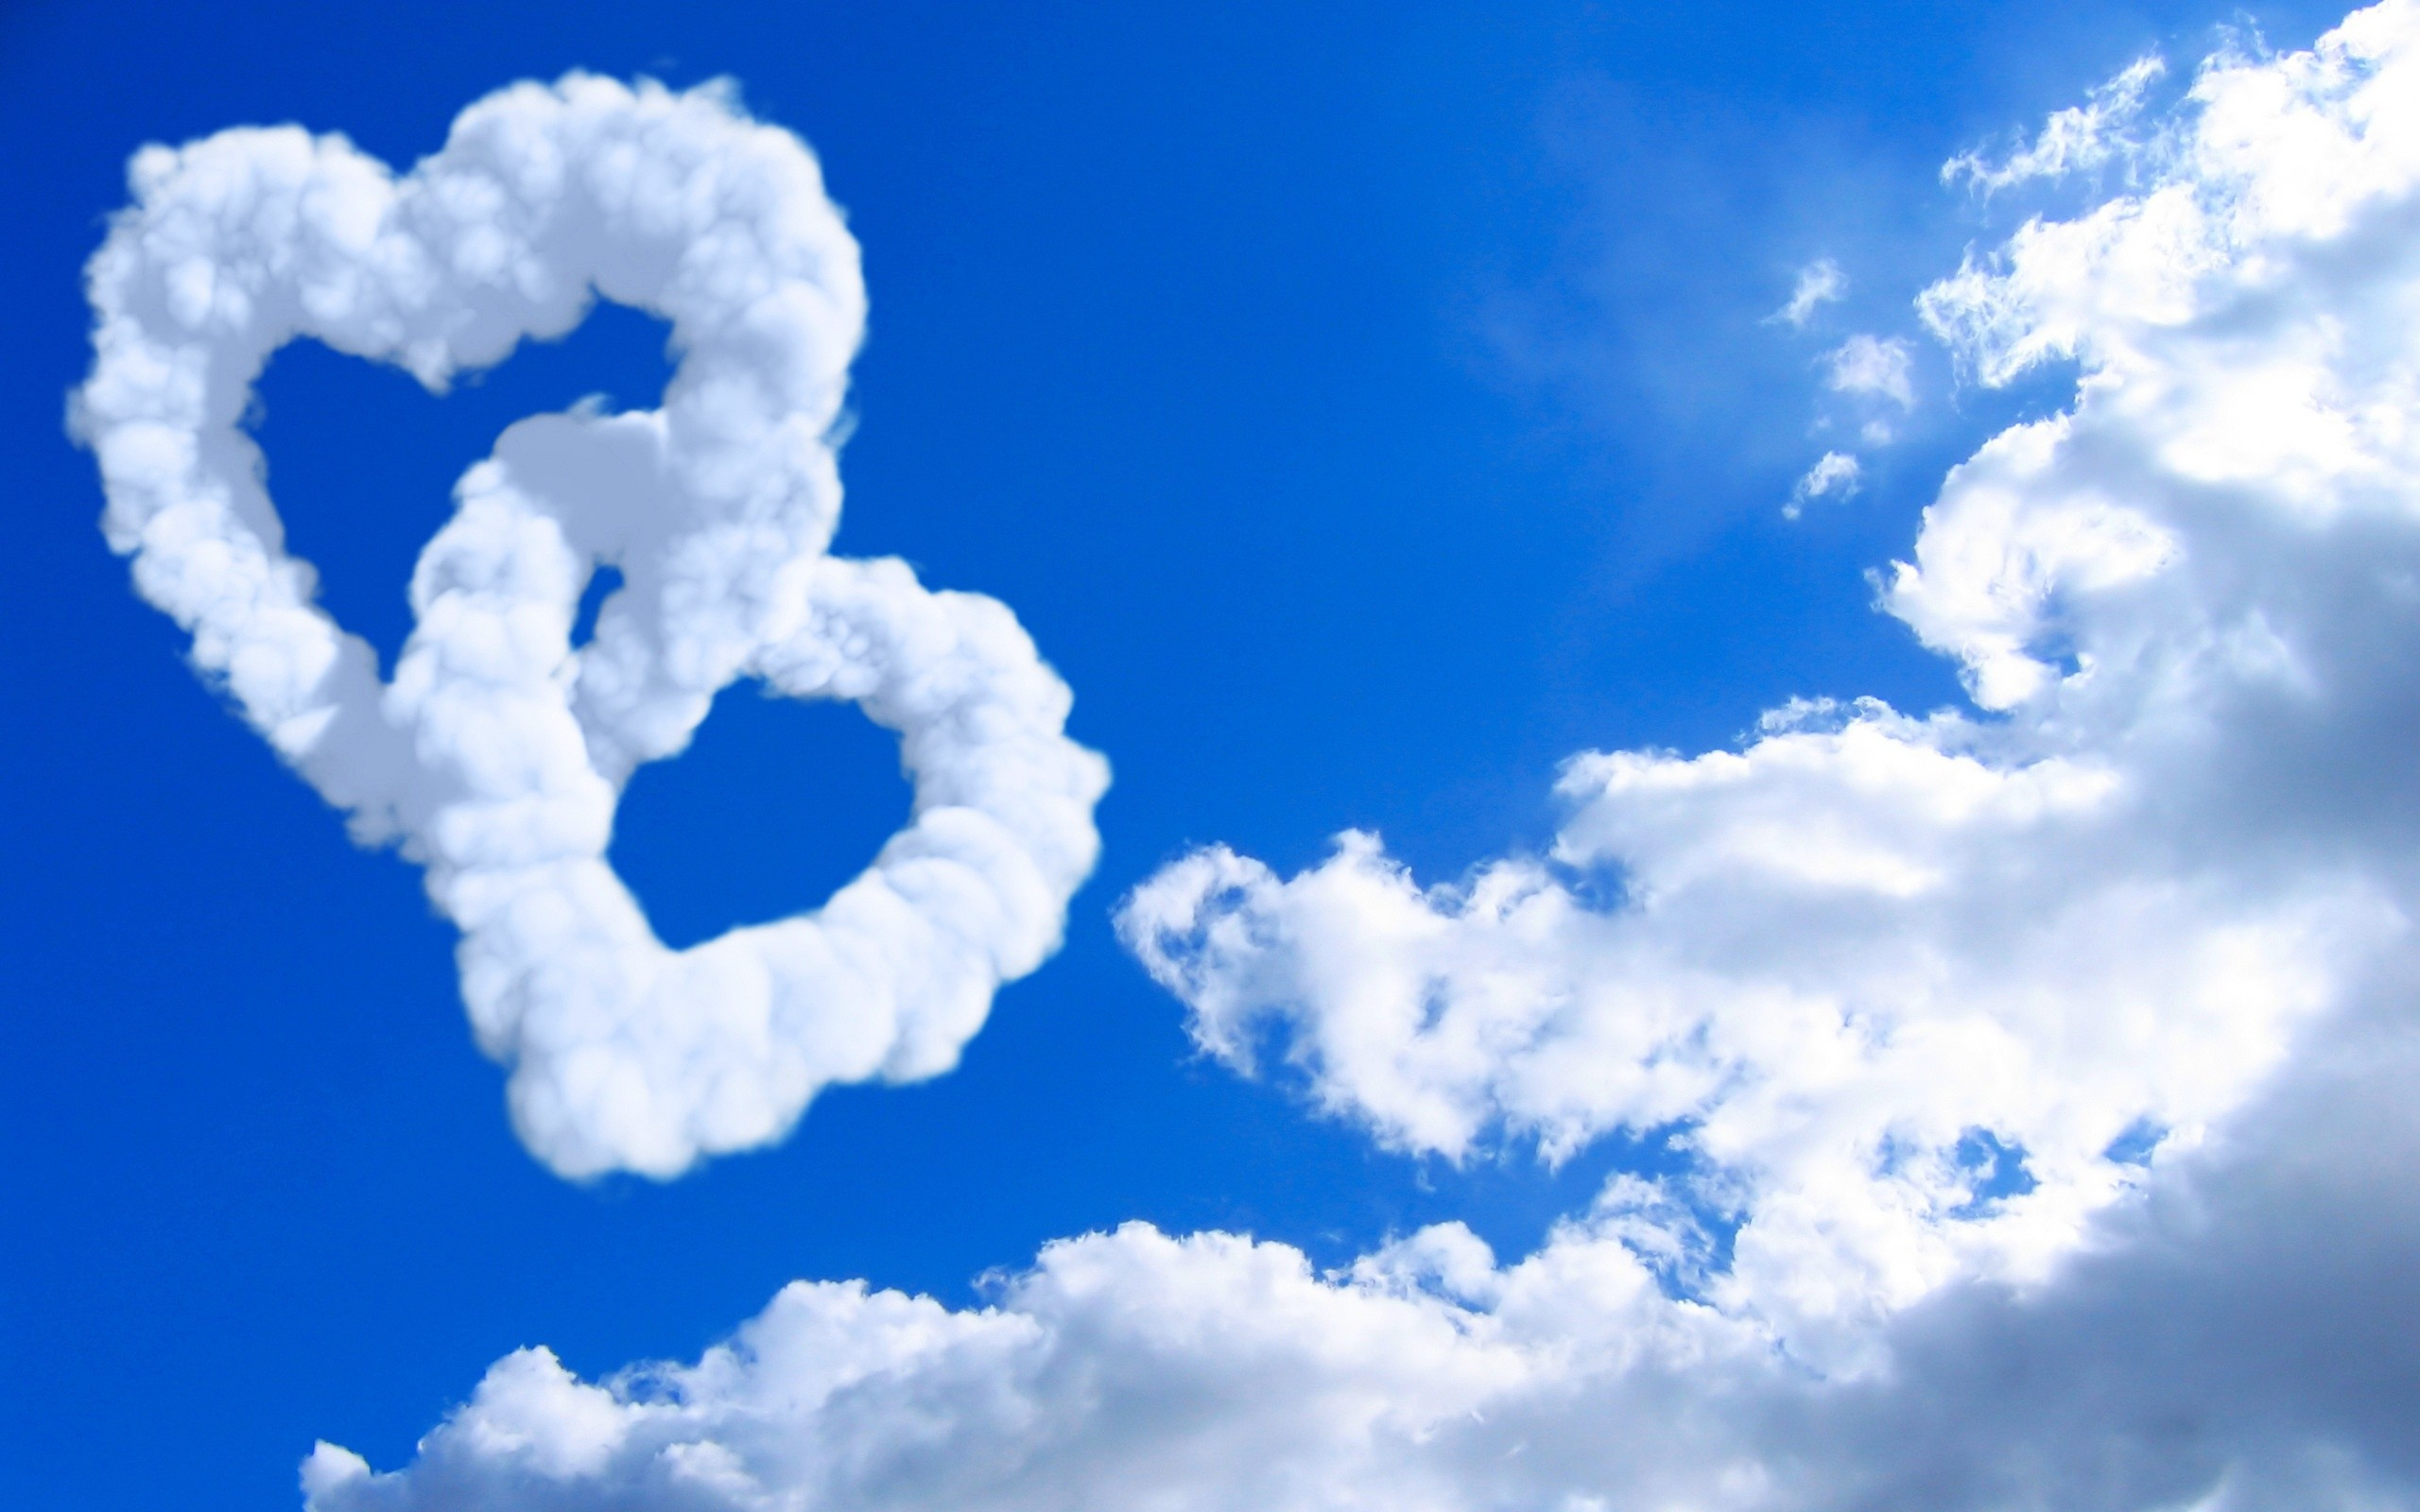 Res: 2560x1600, Tags: Clouds Hearts